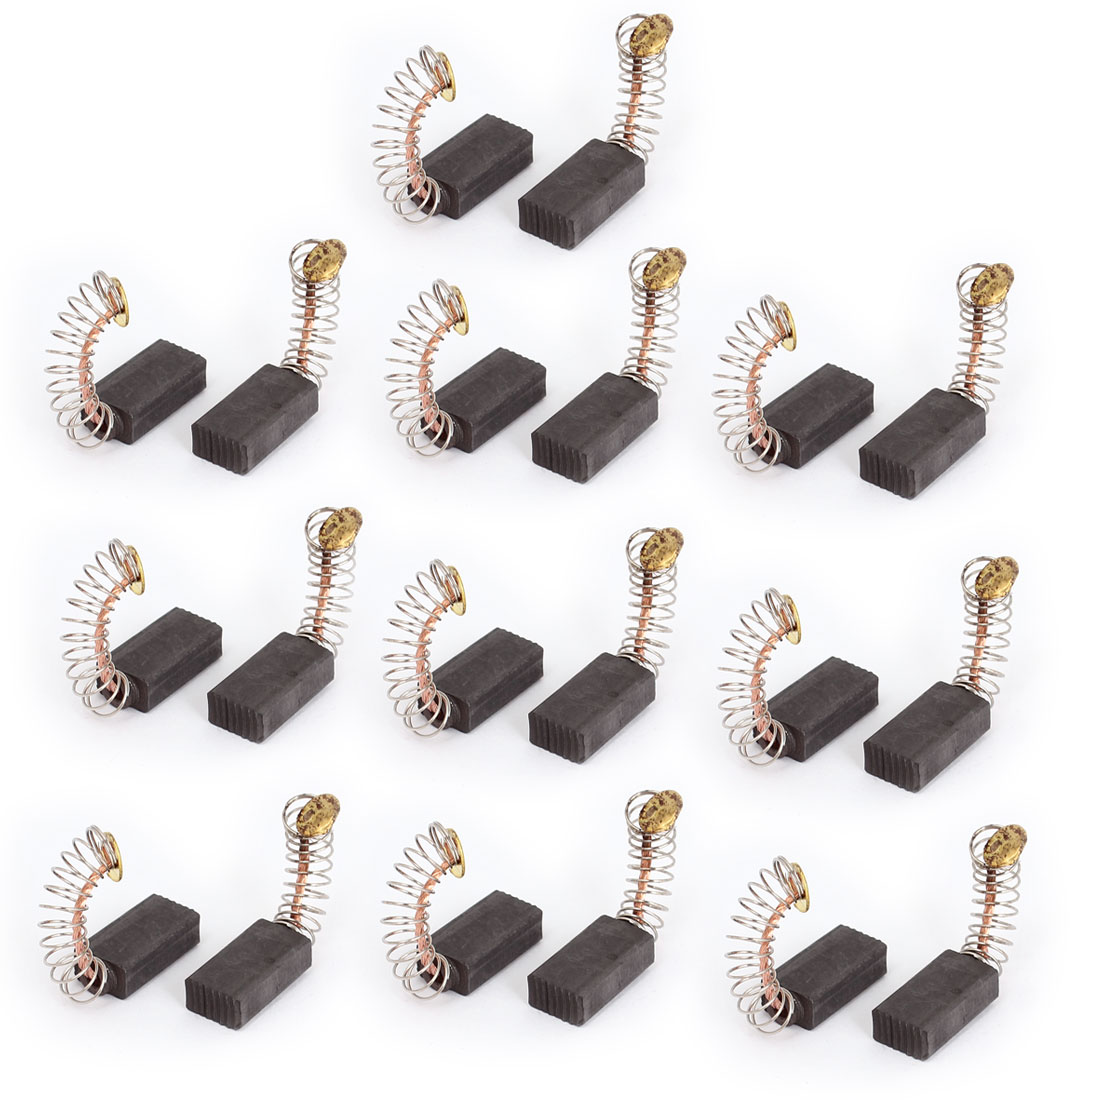 10 Pairs Spring Type Motor Carbon Brushes Replacement 15mm x 8mm x 5mm